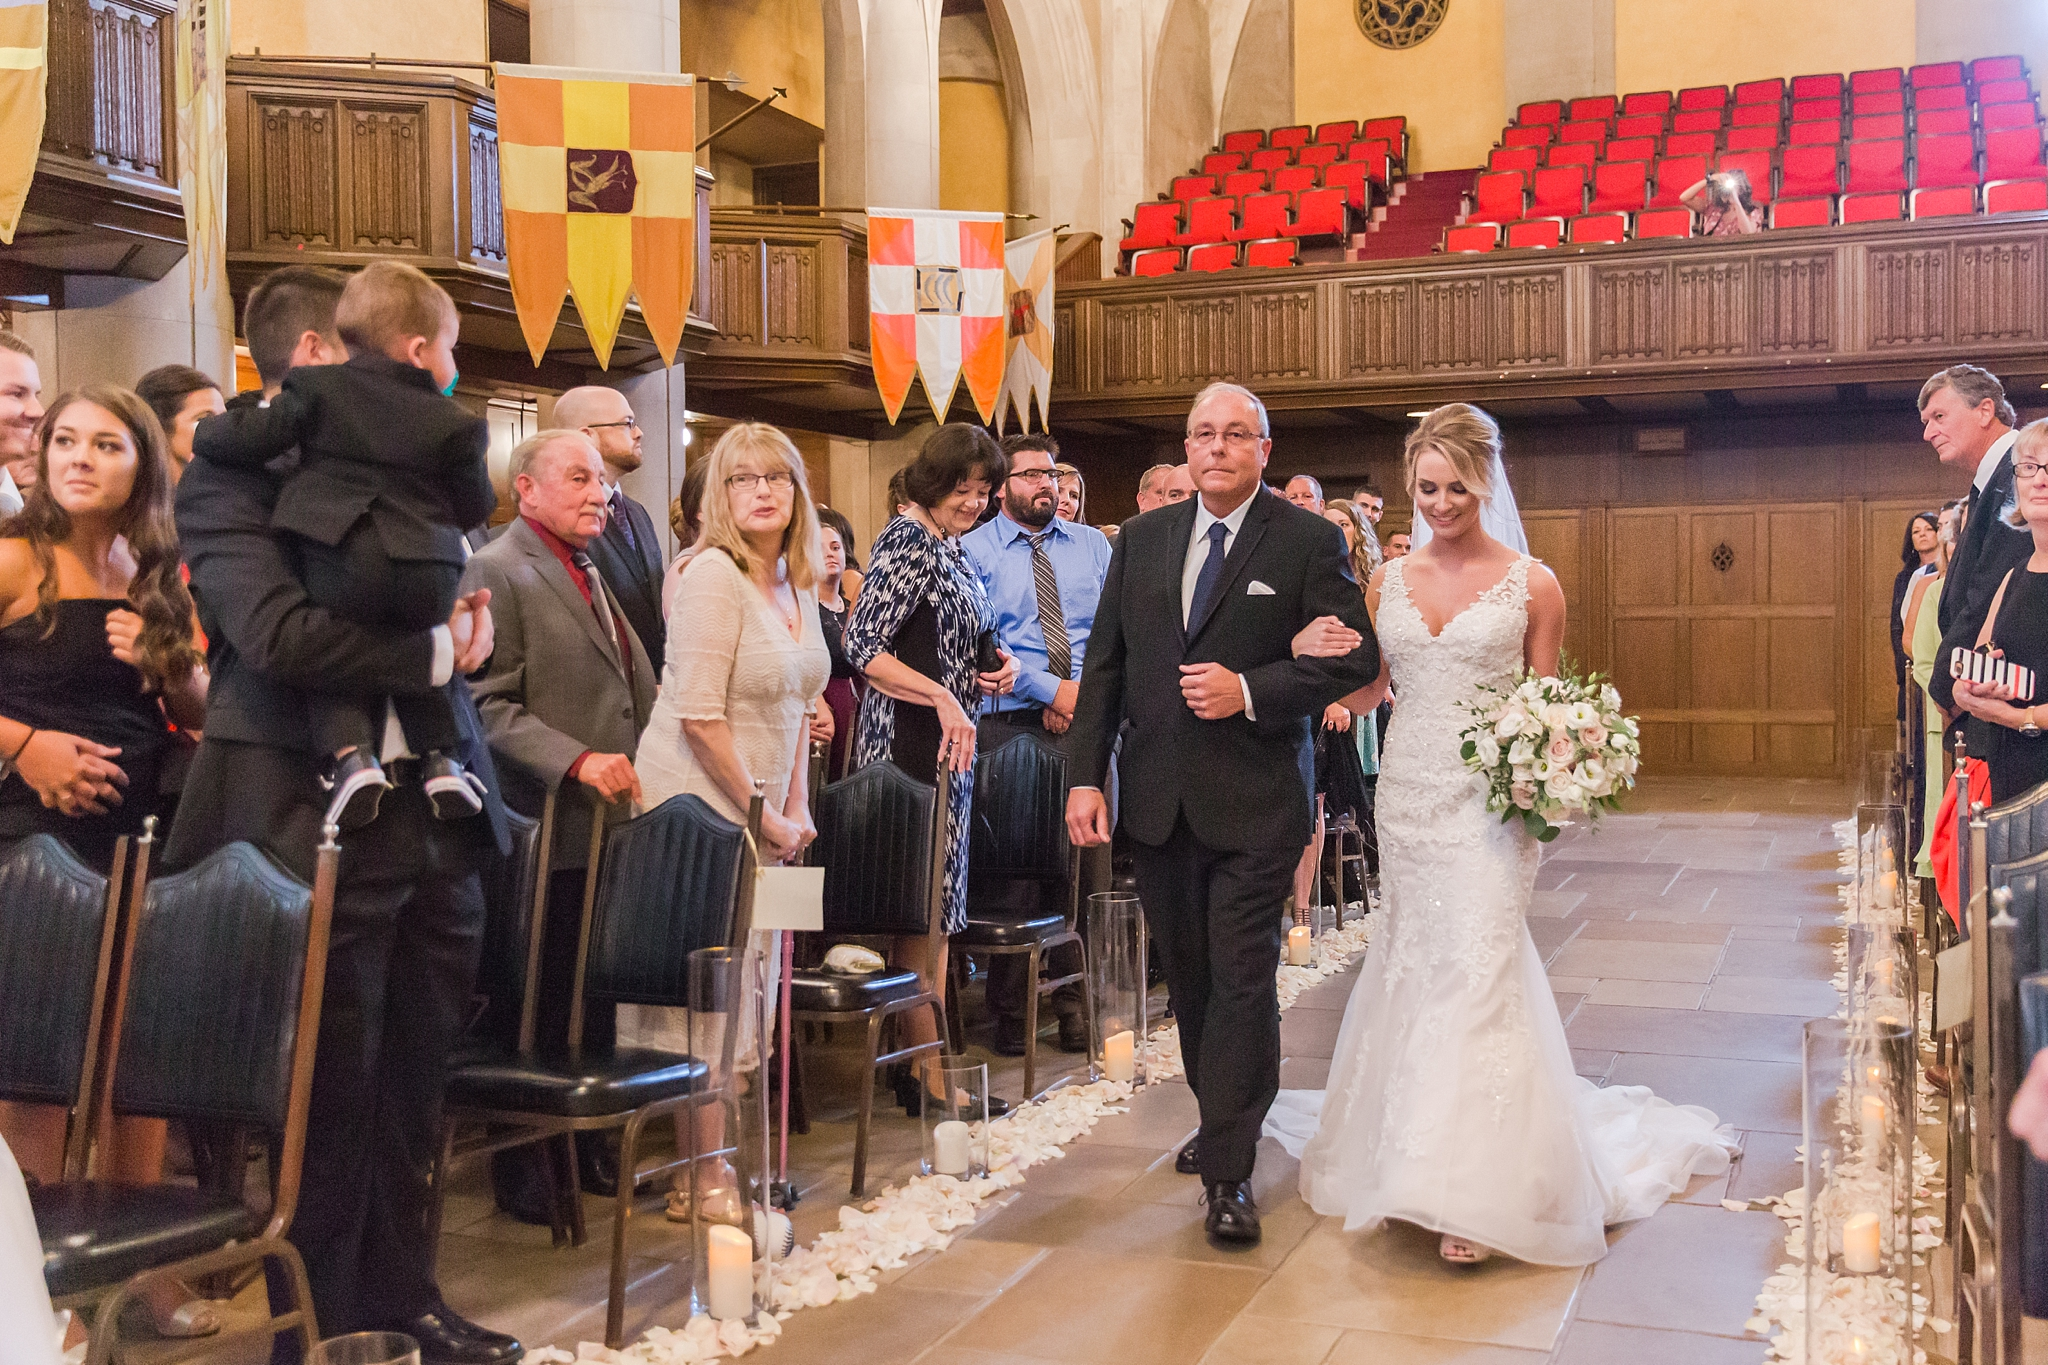 candid-romantic-wedding-photos-at-the-masonic-temple-belle-isle-detroit-institute-of-arts-in-detroit-michigan-by-courtney-carolyn-photography_0071.jpg